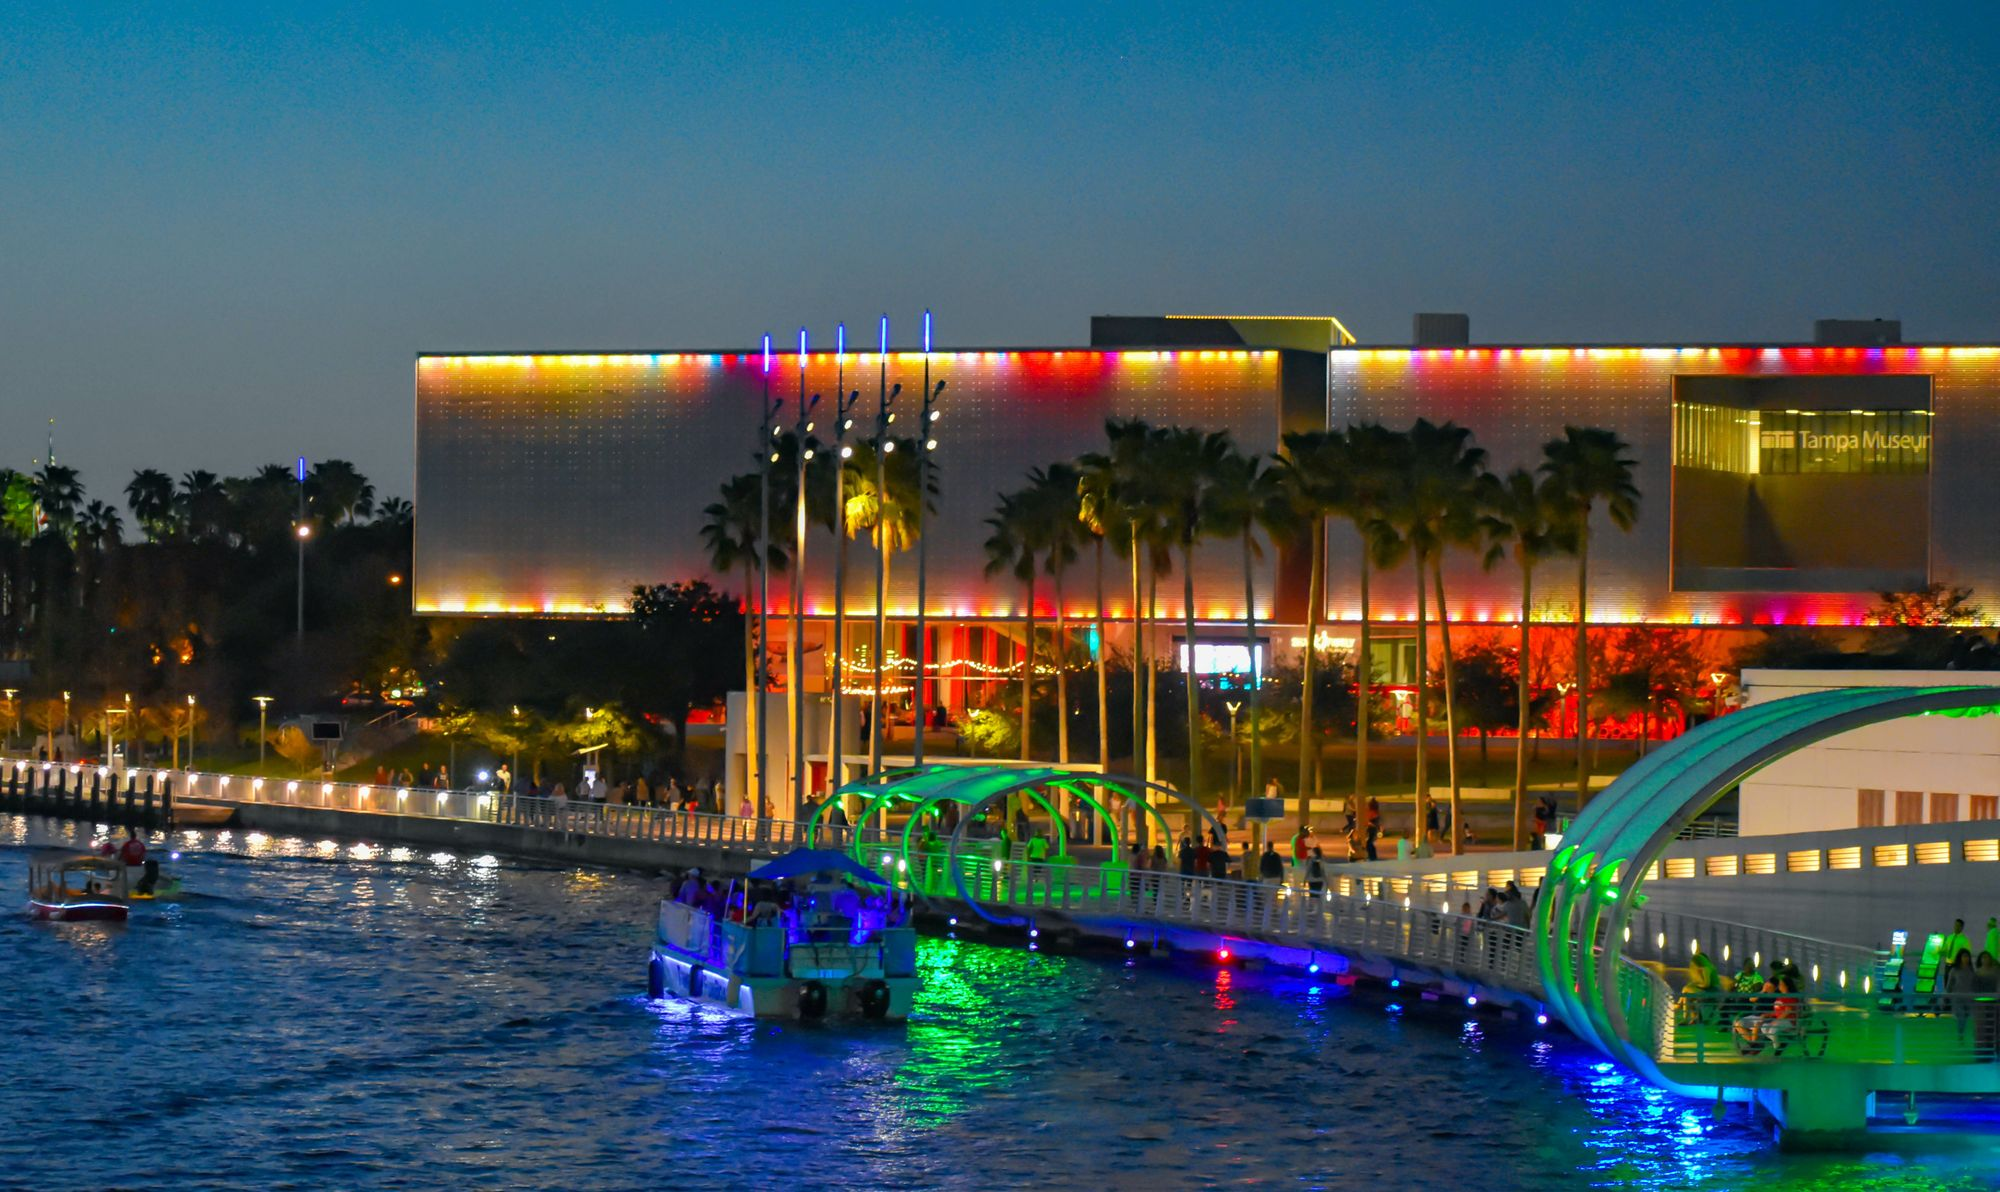 Tampa Museum of Art façade shining with LED lights between Perforated Metal